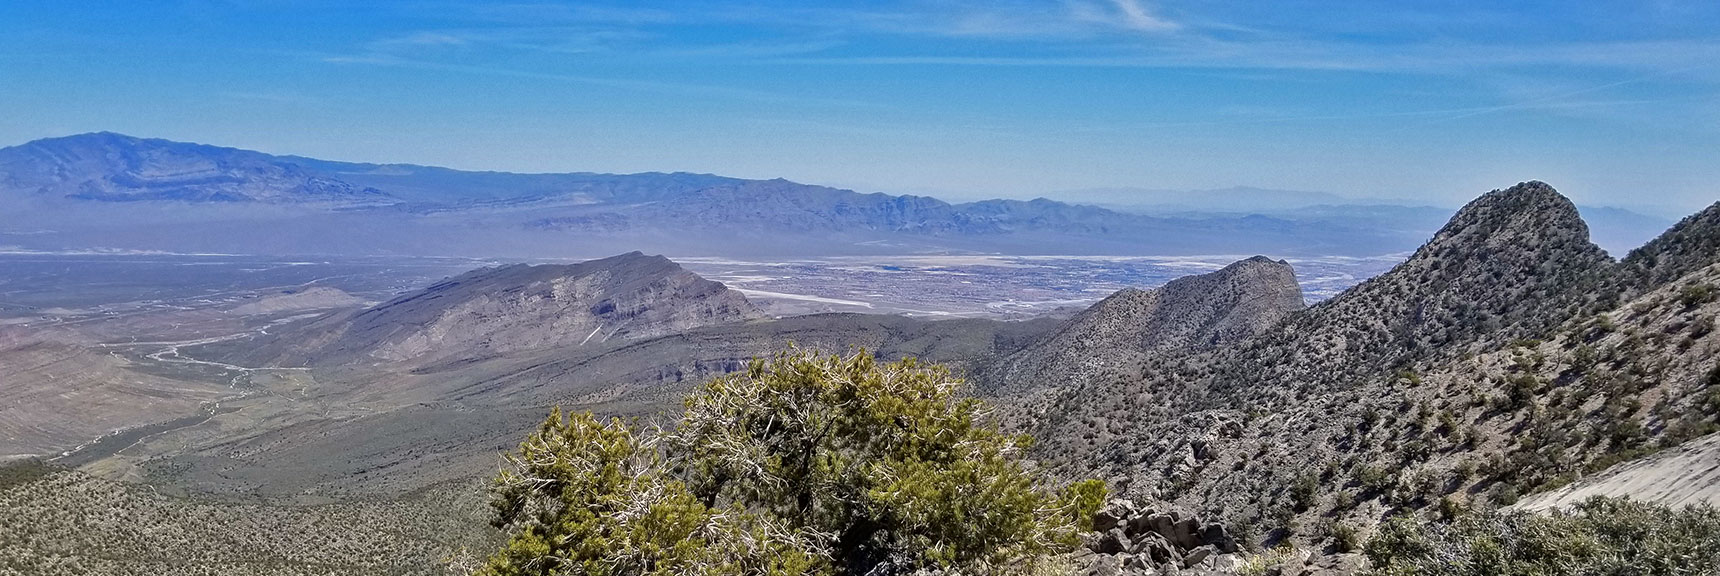 Sheep Range, Gass Peak and Centennial Hills Viewed from the 7400ft High Point on the La Madre Mountain Nevada Northern Approach